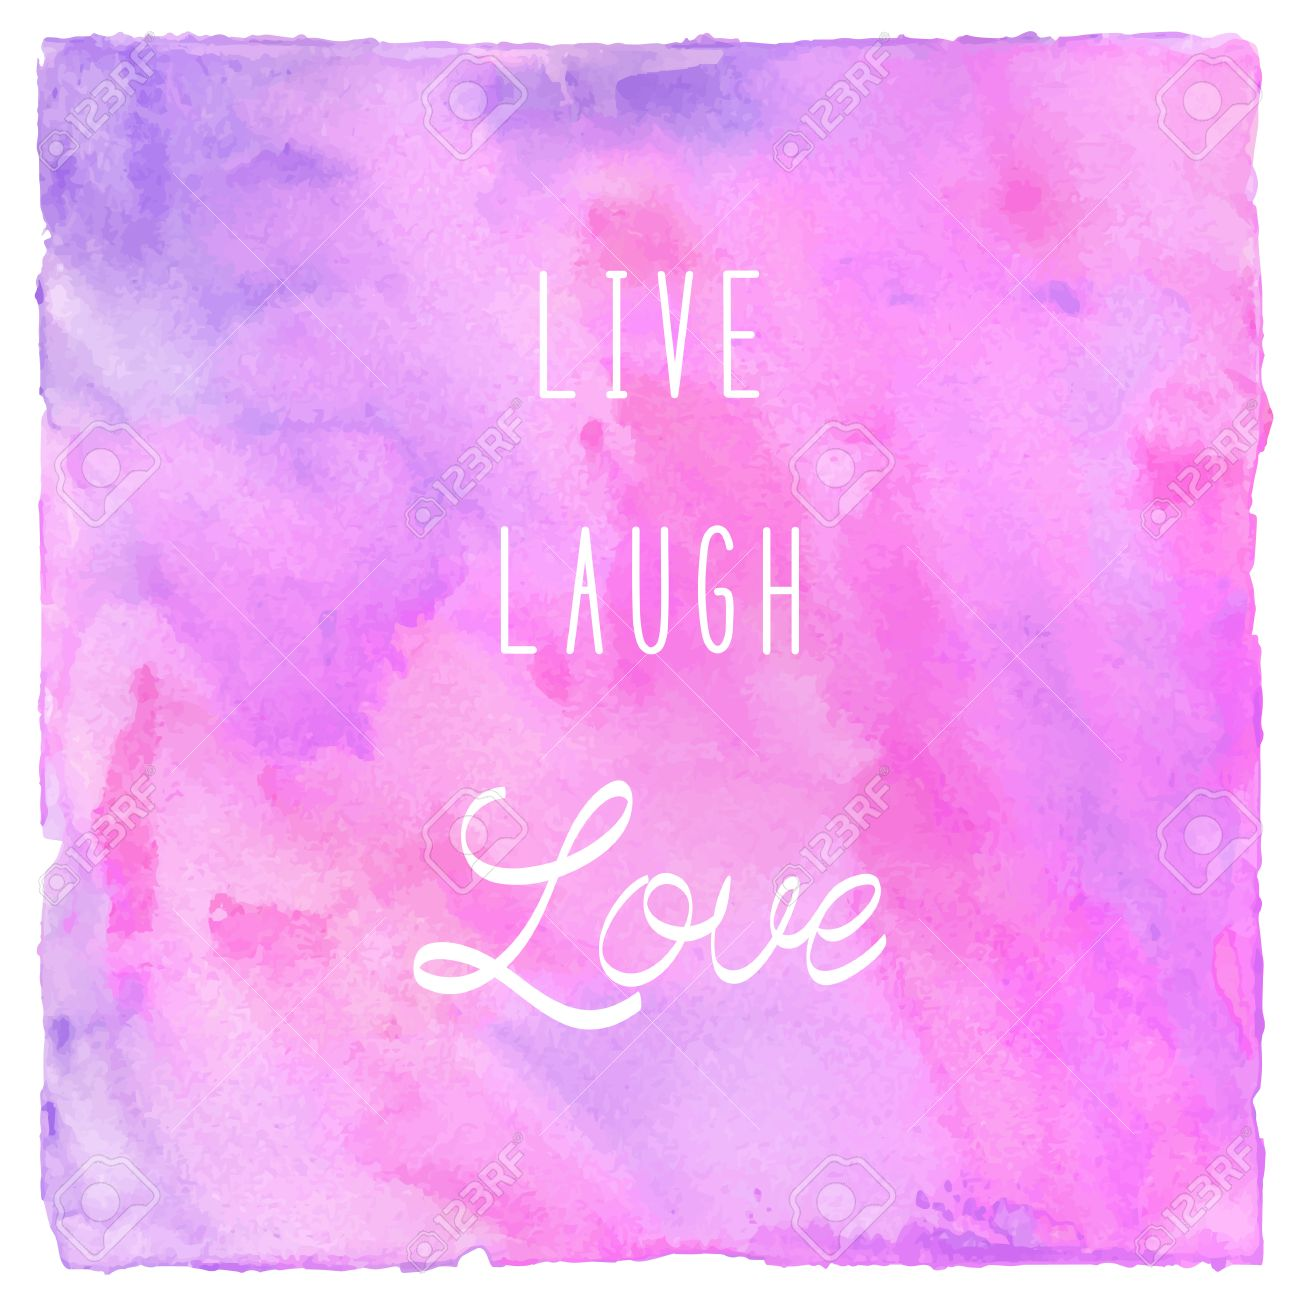 Live laugh love. Inspirational quote on colorful watercolor background.